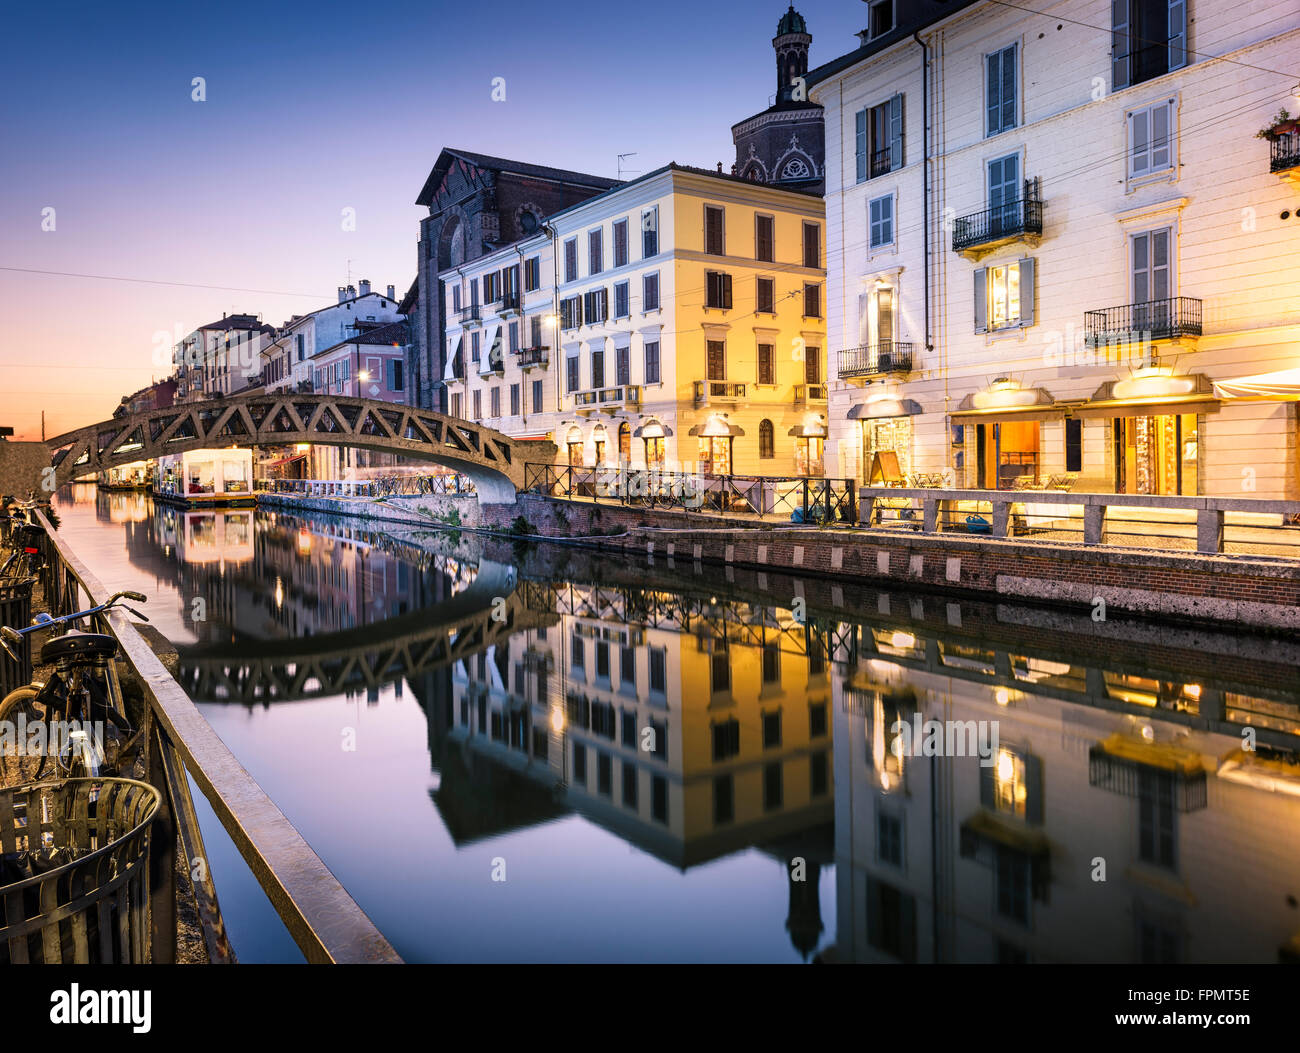 Bridge across the Naviglio Grande canal at the evening in Milan, Italy - Stock Image